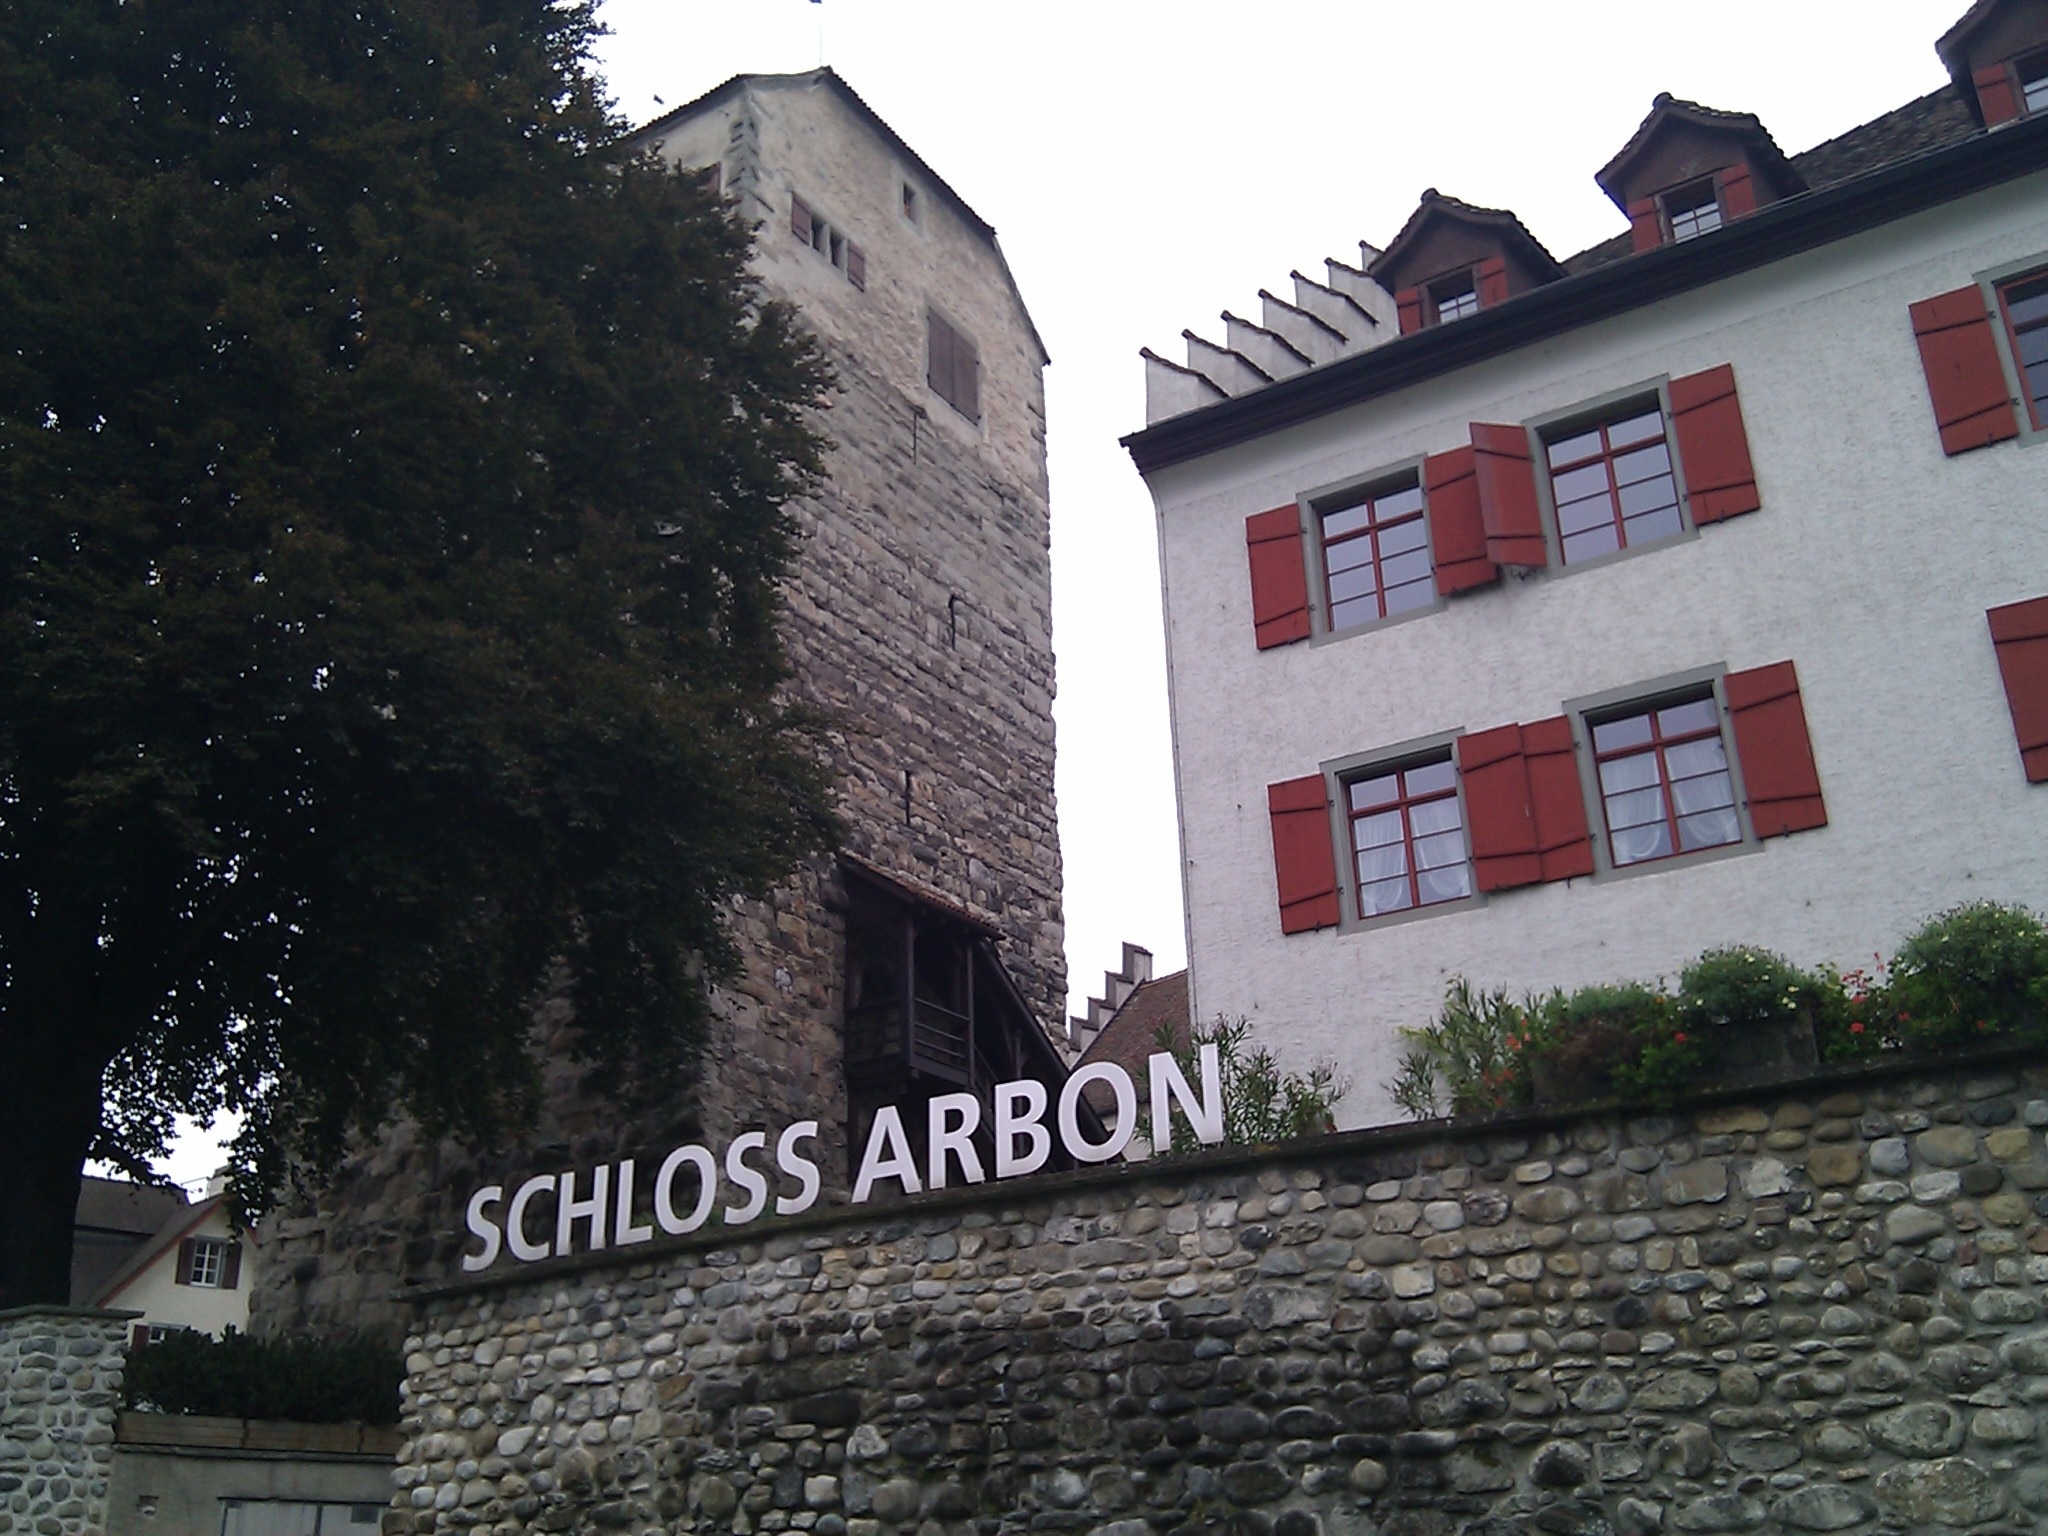 Lunch in Arbon. The town's castle is a clear reminder of troubles over the ages.